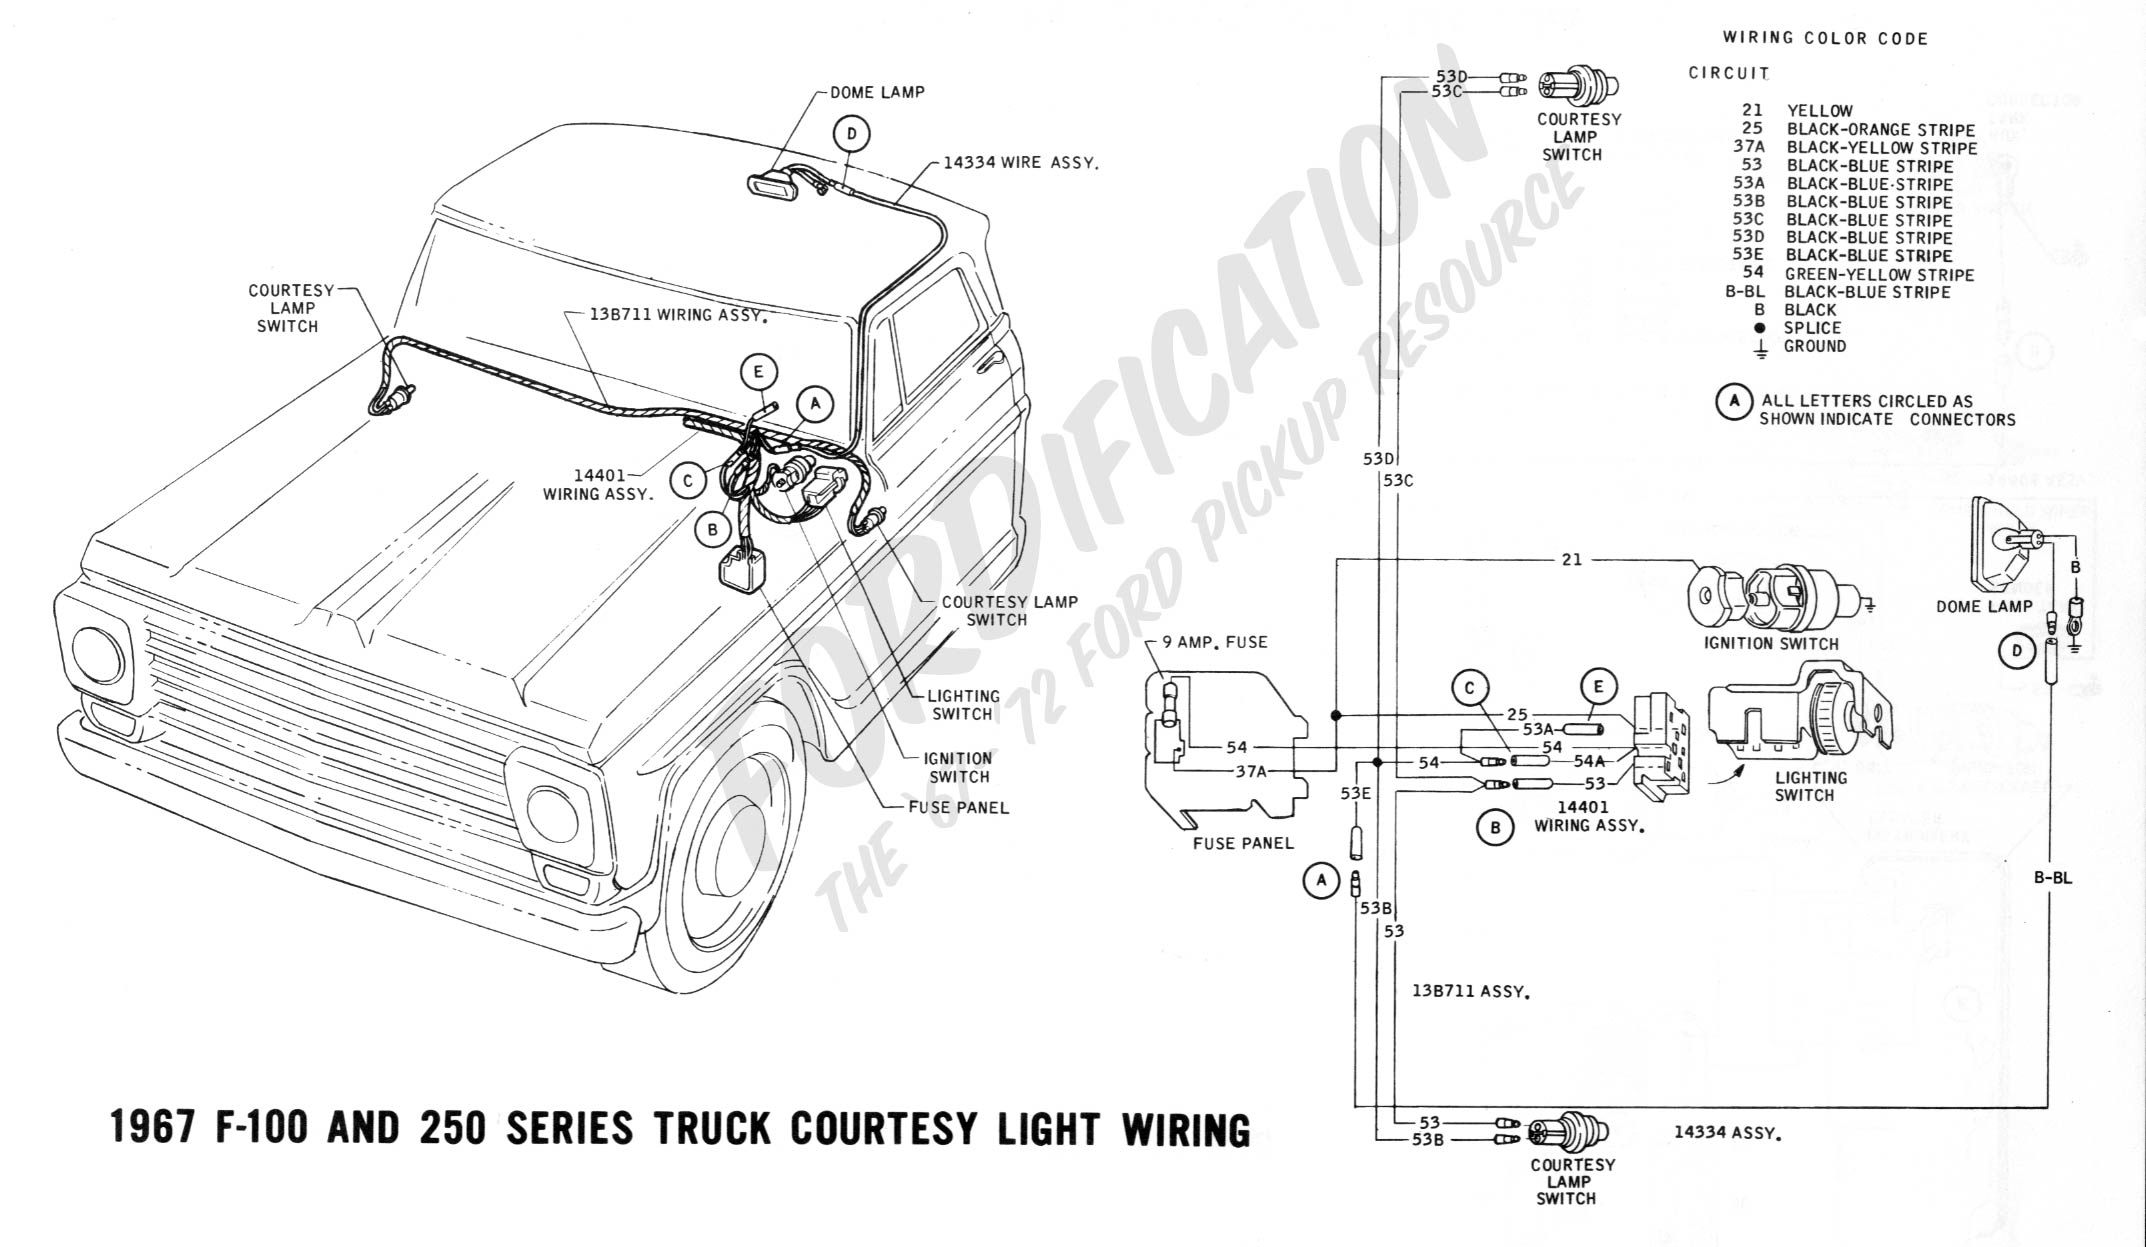 wiring 1967courtesylight wiring in ignition switch in 1966 f100 ford truck enthusiasts forums 1966 ford truck wiring diagram at n-0.co